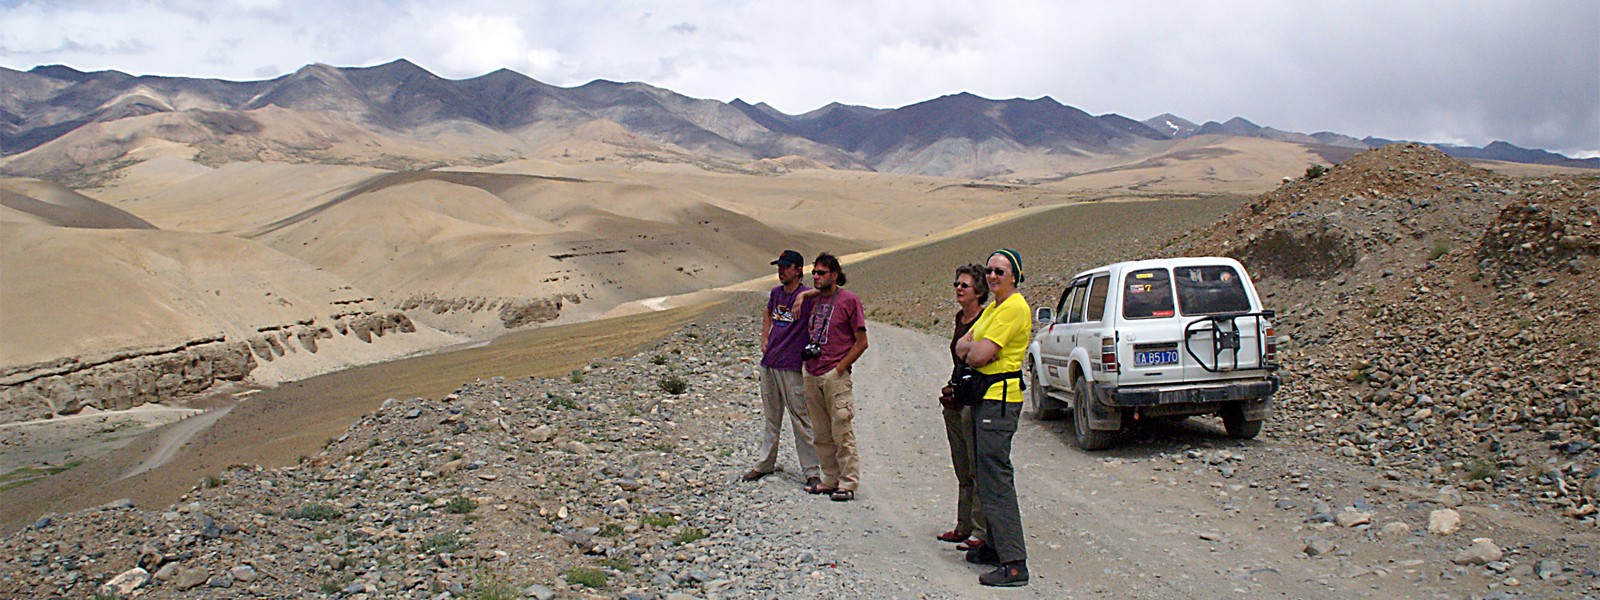 Overland Tours in Tibet Region